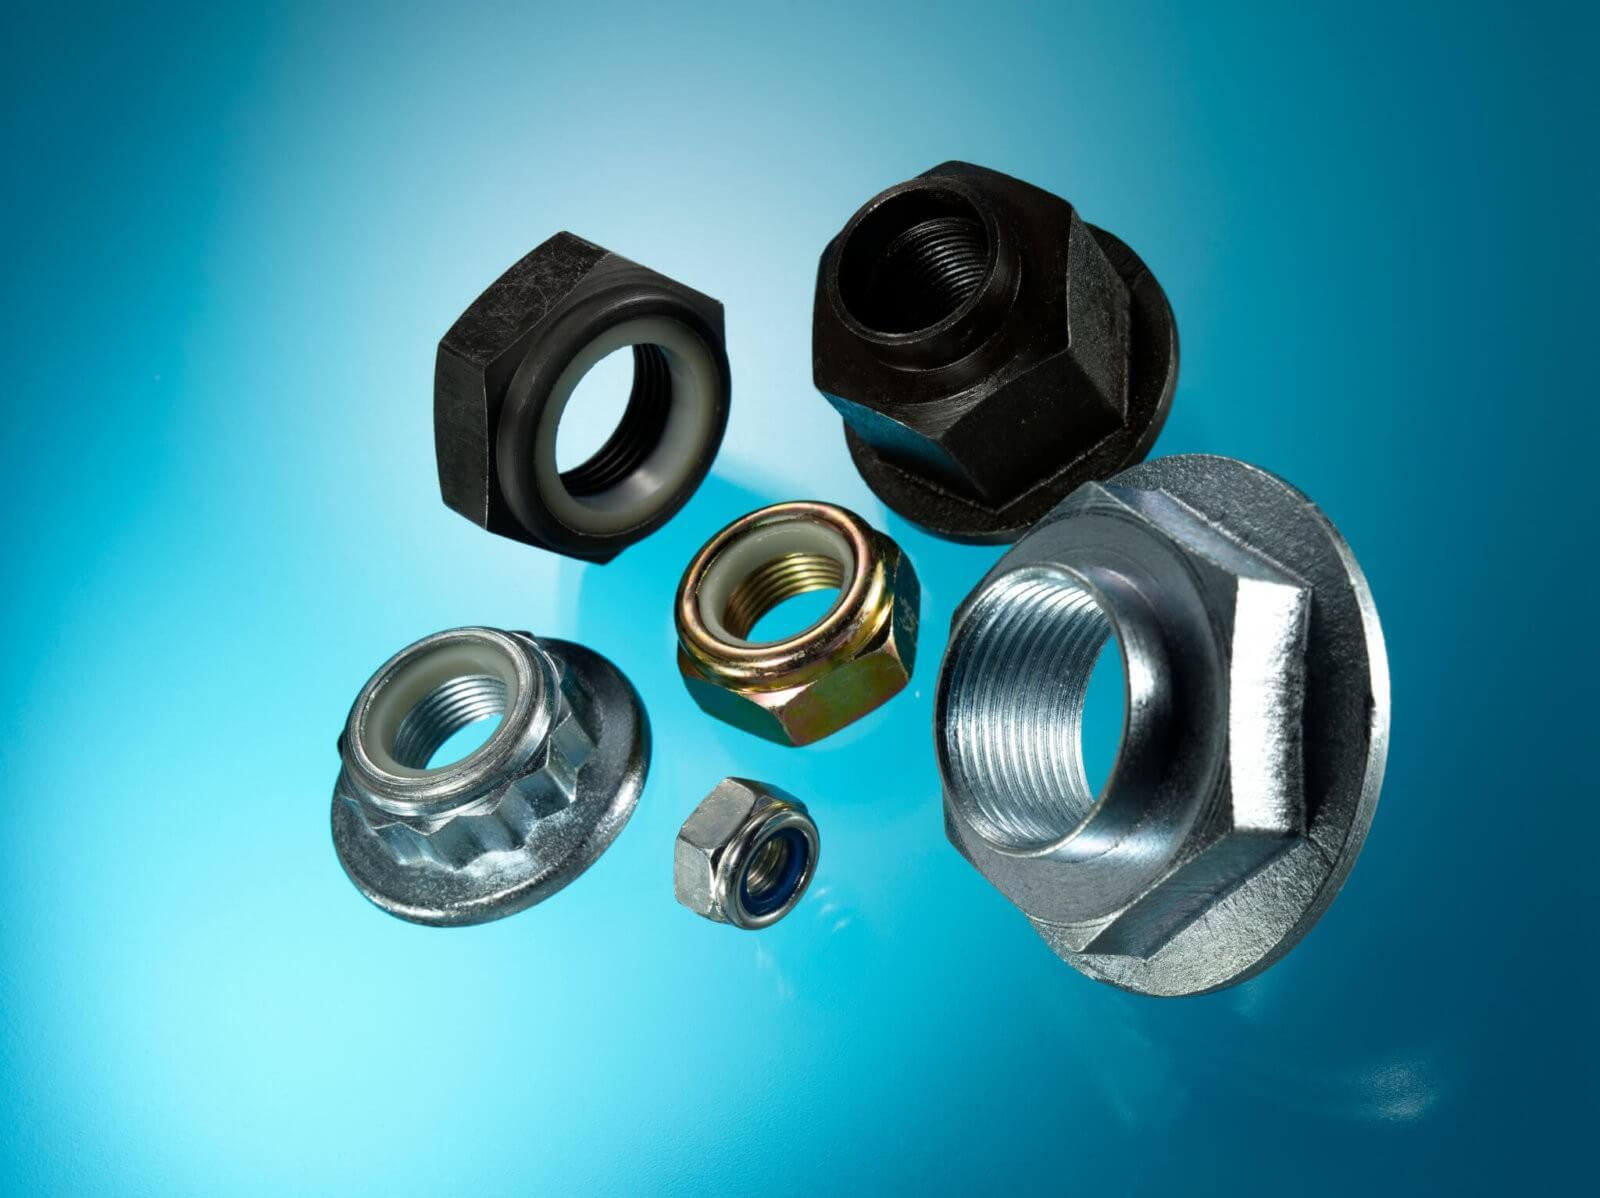 Automotive Parts Nuts. Hex nuts, Flannge nuts, Castle nuts, Self Locking nuts, Captive Washer nuts and Shake Proof nuts.